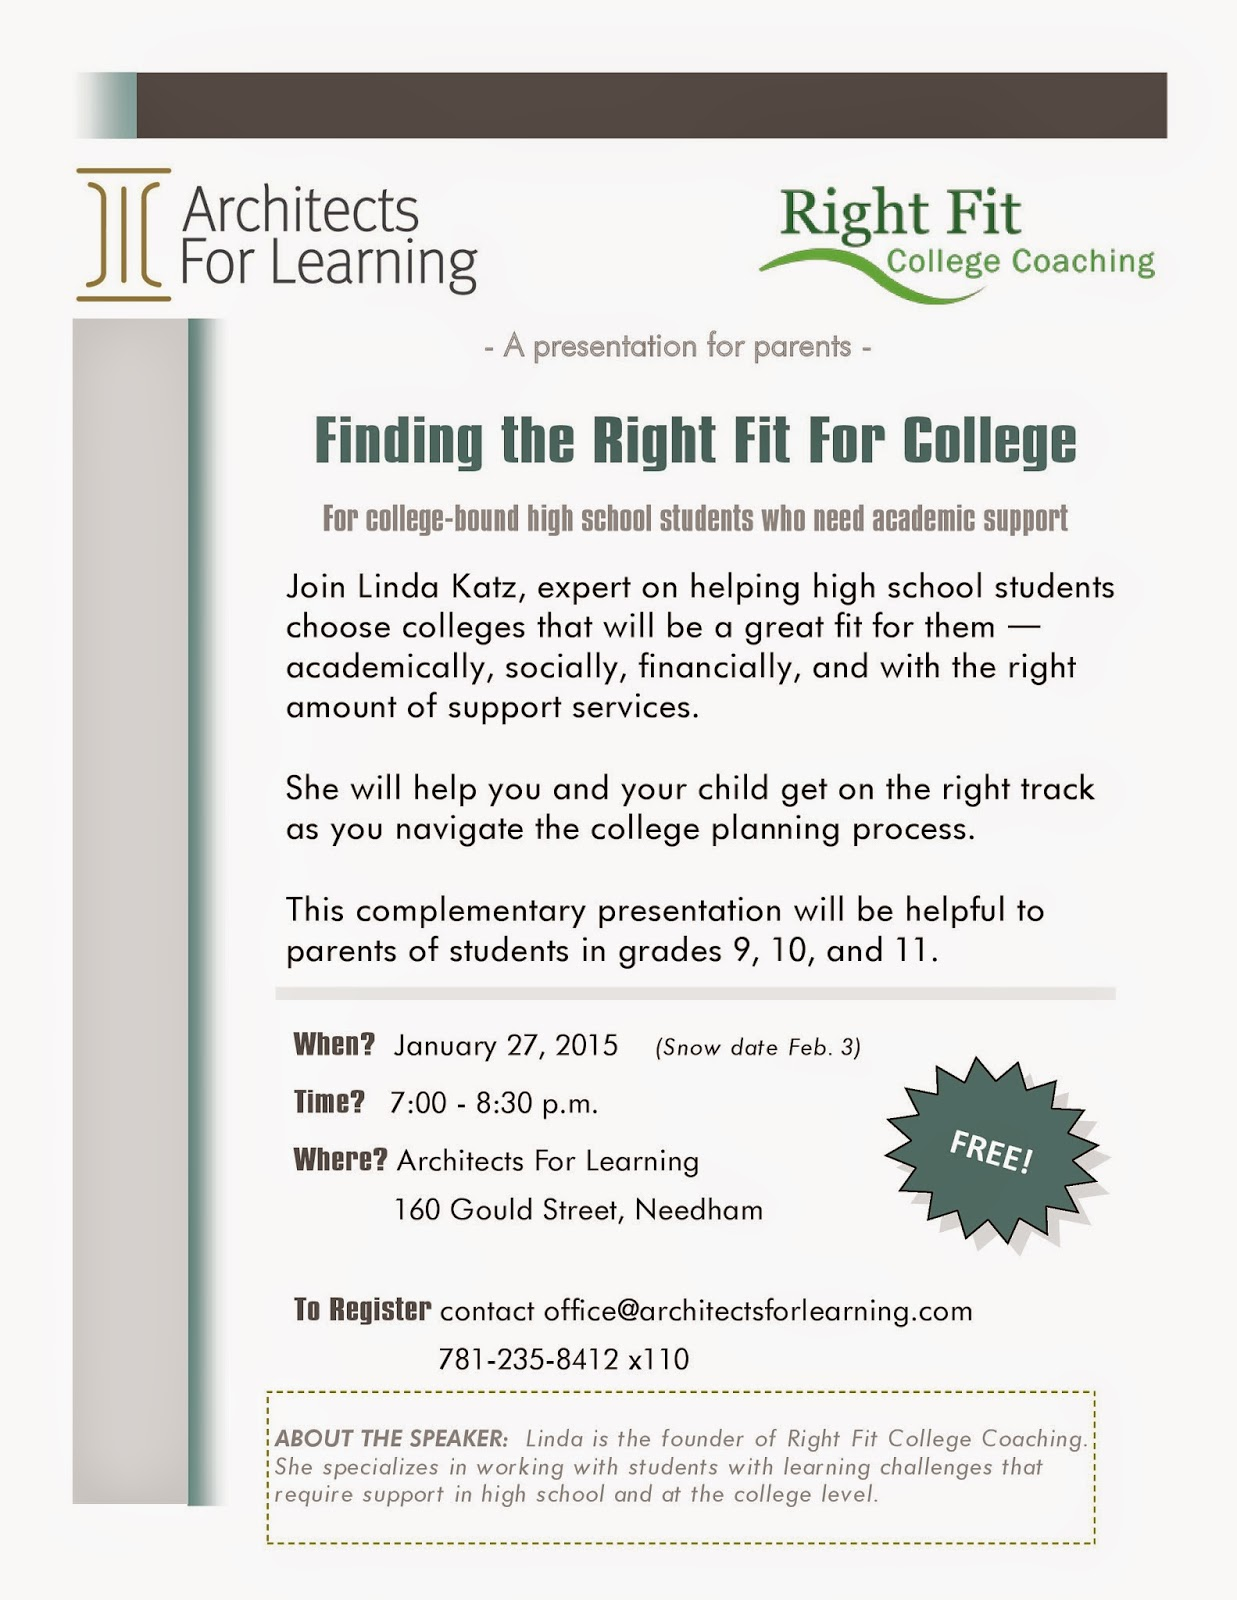 Finding Right Fit For College Free Talk >> Nesca News Notes Finding The Right Fit For College Free Talk